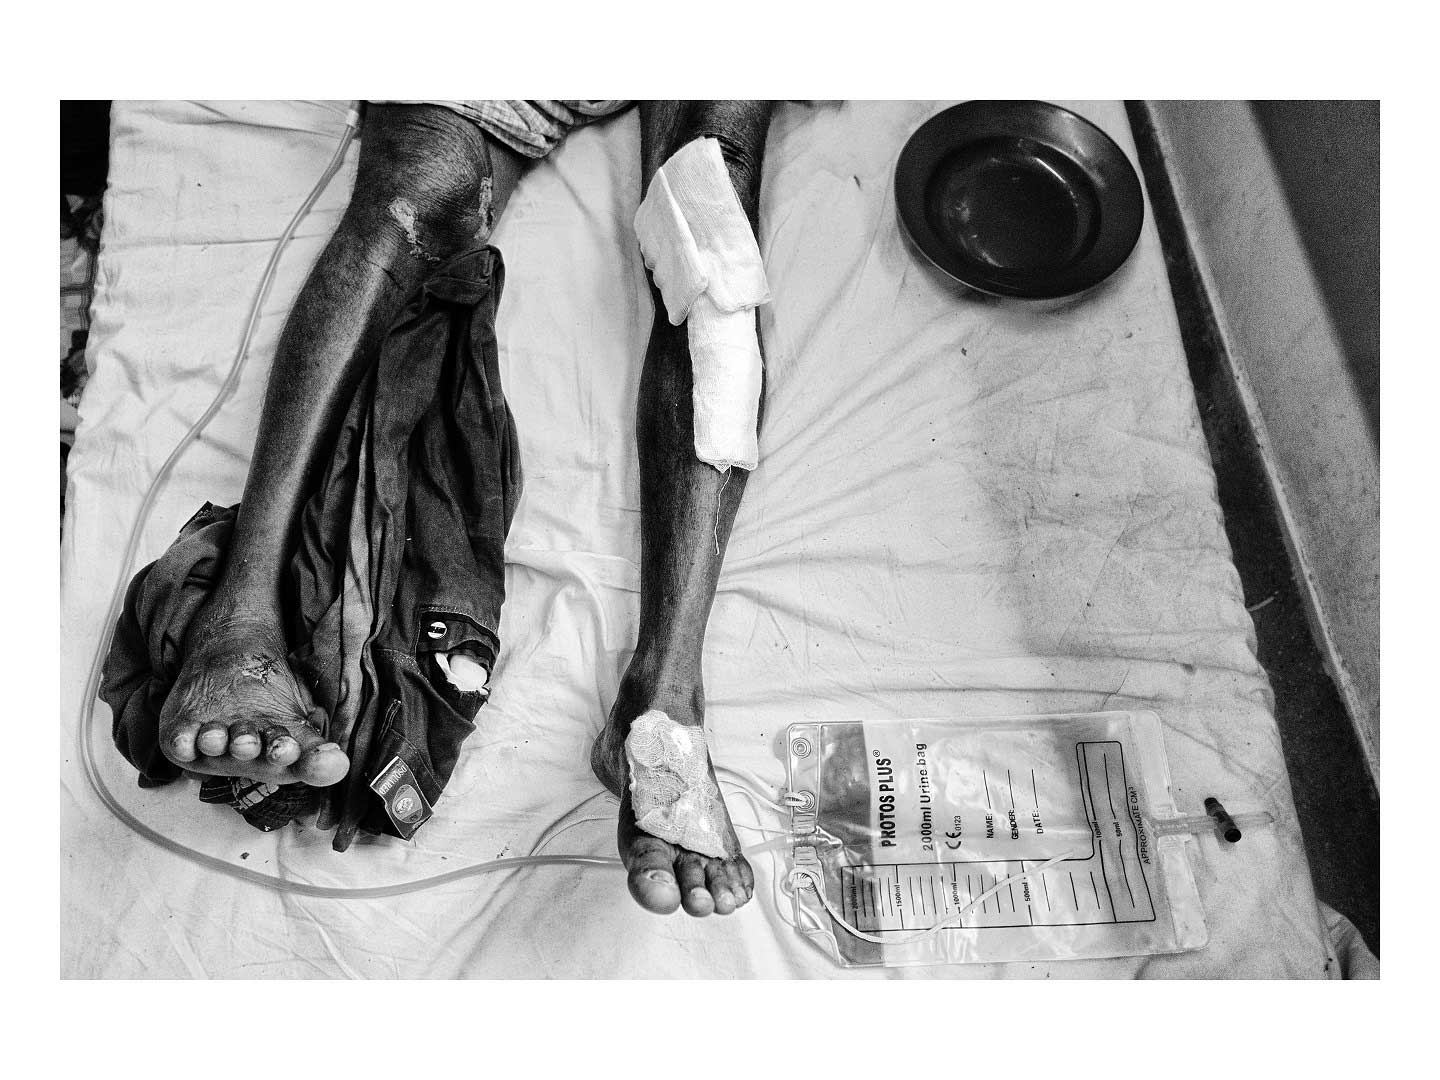 Sixty-year-old Hussein lay in a bed at the Cox's Bazar Sadar Hospital. Shrapnel from helicopters attacking his village damaged both legs. Photo by Greg Constantine.